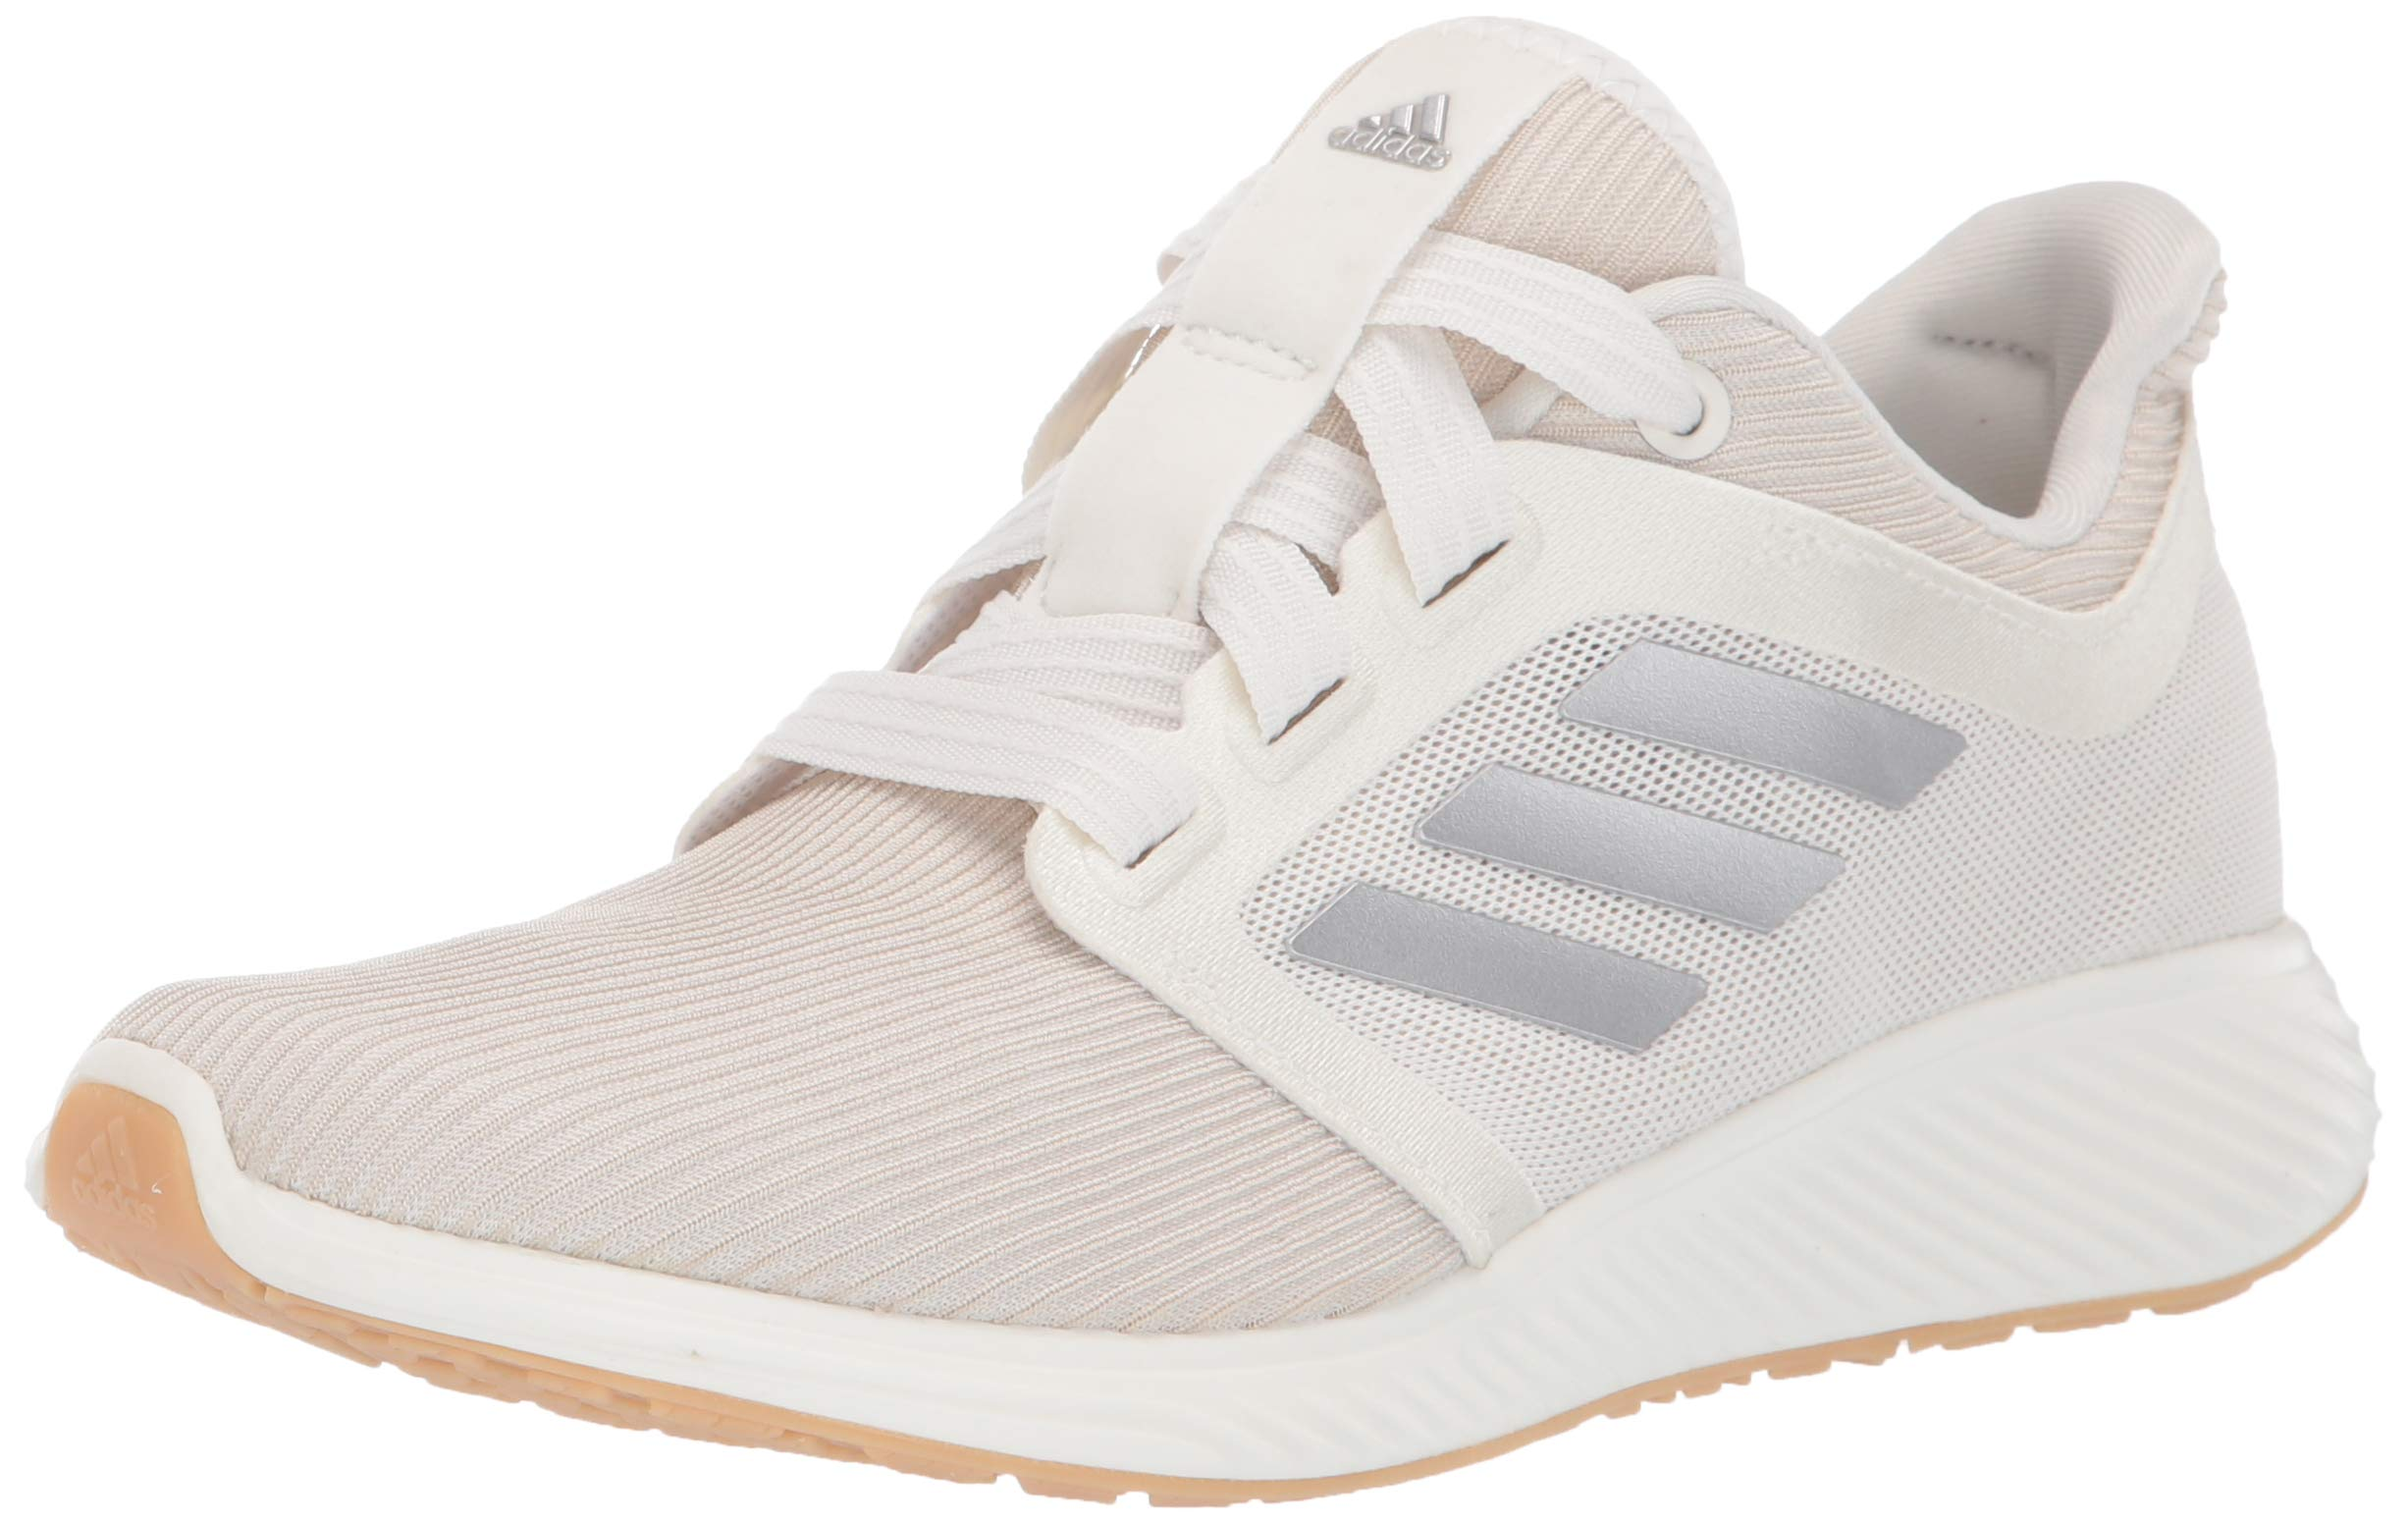 adidas Women's Edge Lux 3 Running Shoe, st Pale Nude/tech Silver Metallic/Cloud White, 7.5 M US